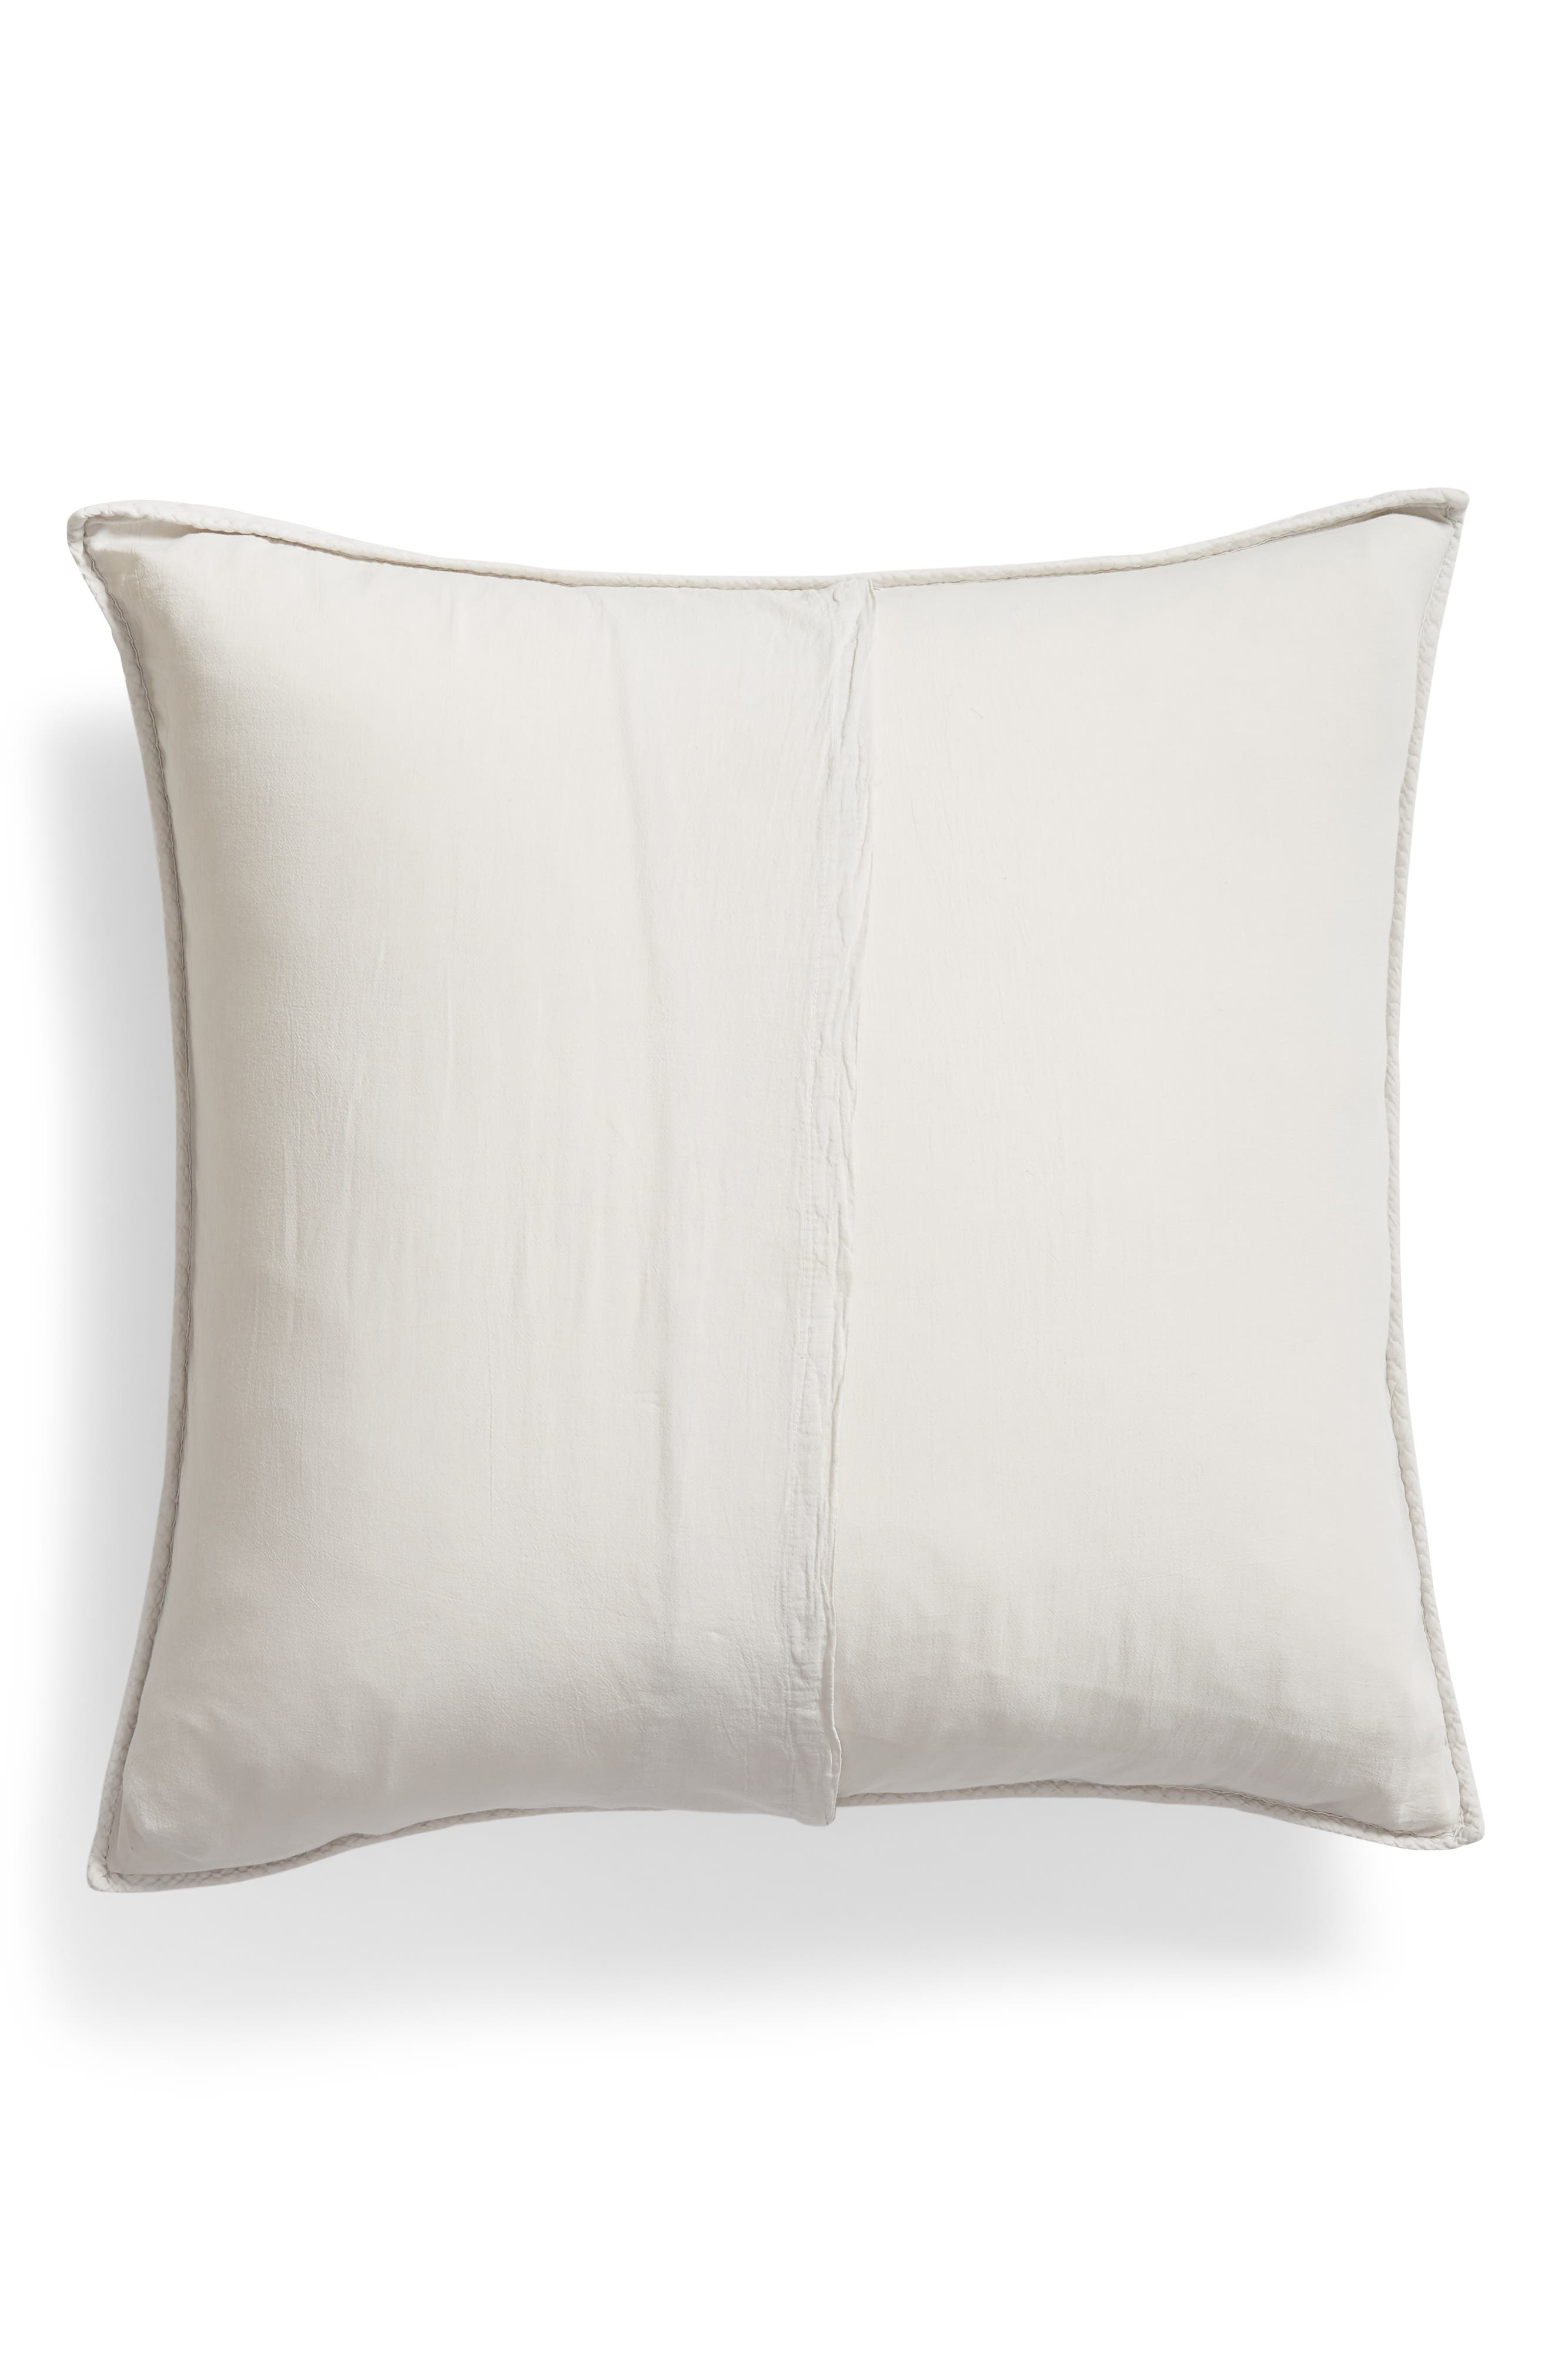 Karlina Quilted Euro Sham,                             Alternate thumbnail 2, color,                             GREY VAPOR